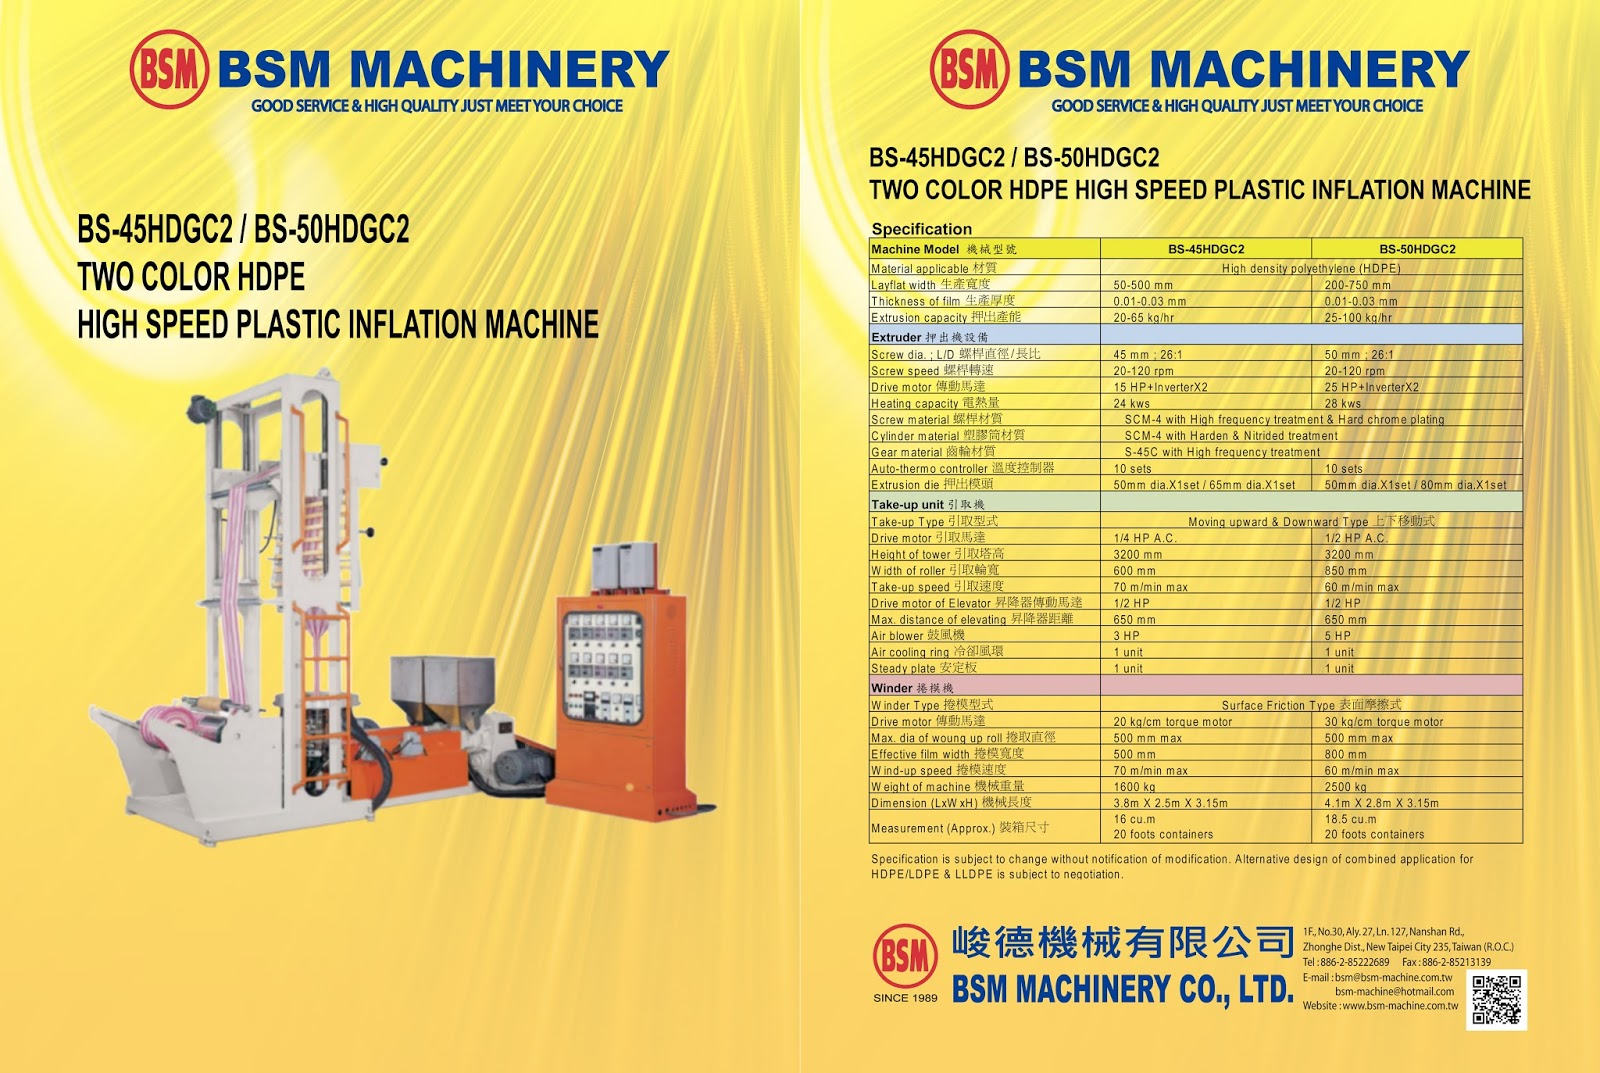 BS-45HDGC2 / BS-50HDGC2  TWO COLOR HDPE HIGH SPEED PLASTIC INFLATION MACHINE